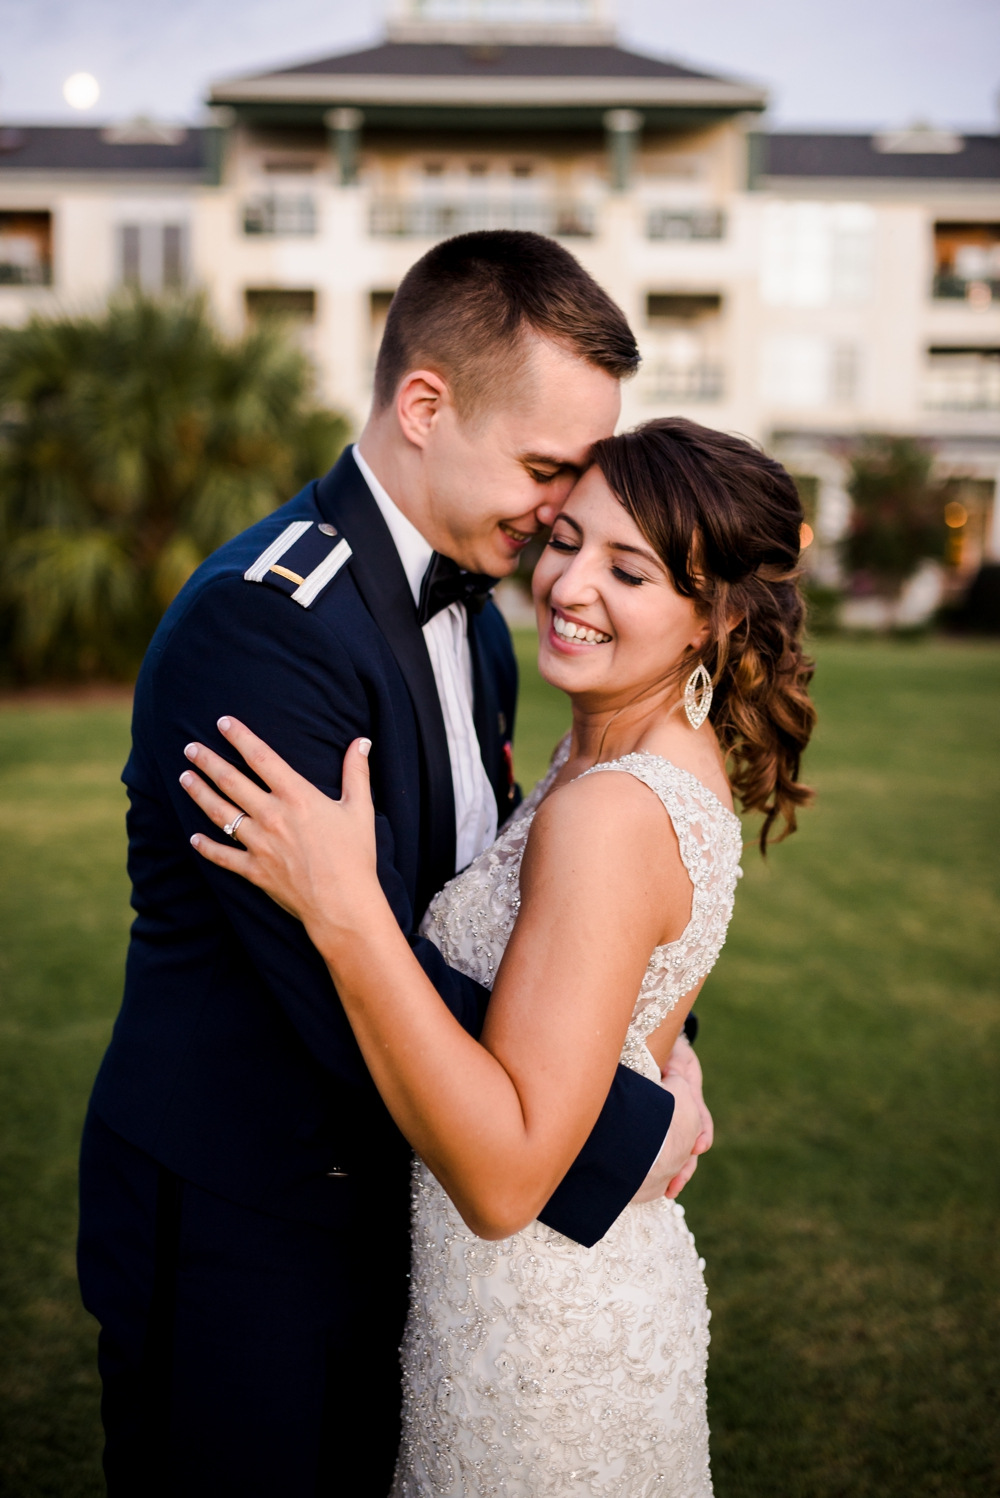 wallin-florida-wedding-photographer-kiersten-grant-175.jpg